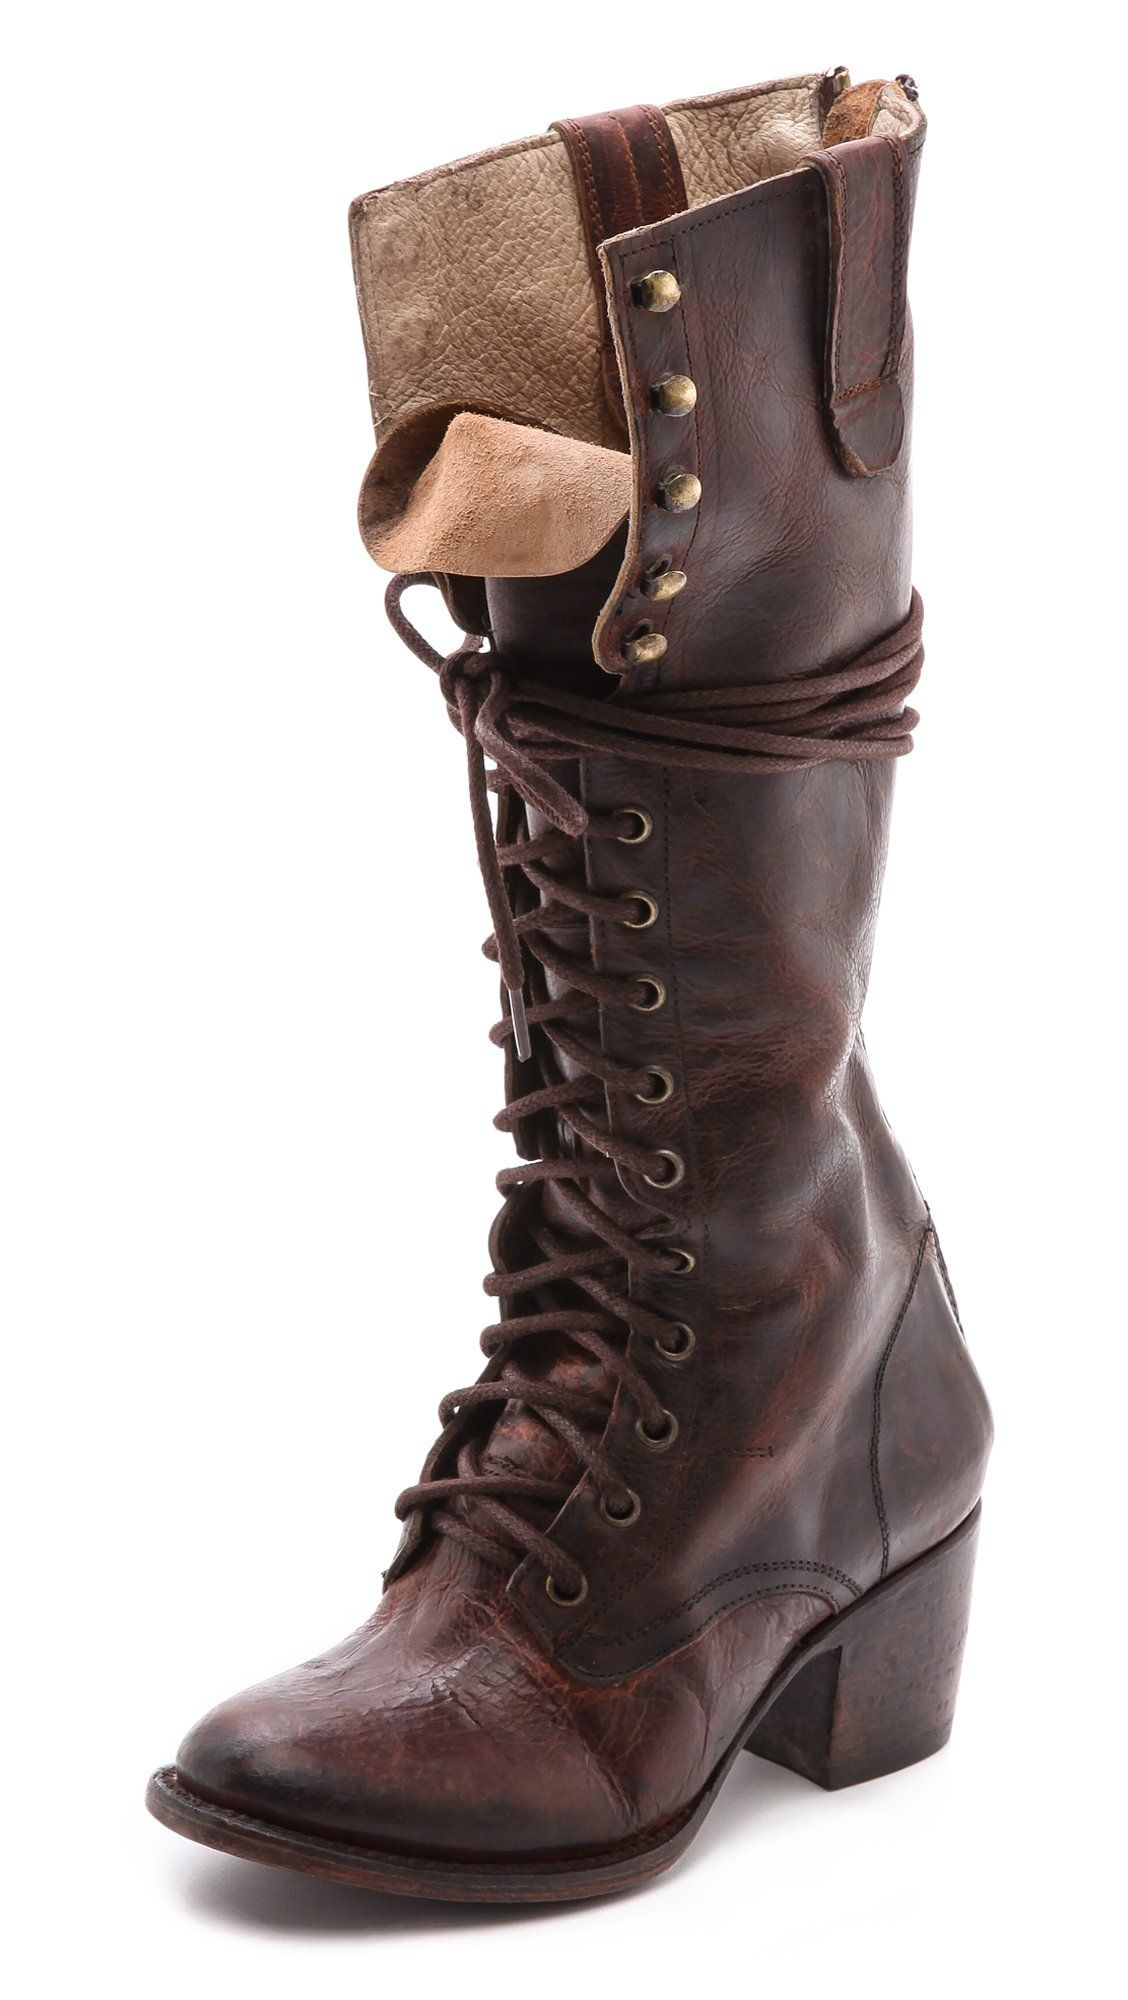 9ab4dae083044a FREEBIRD by Steven Women's Granny Tall Combat Boots, Brown, 8 B(M ...